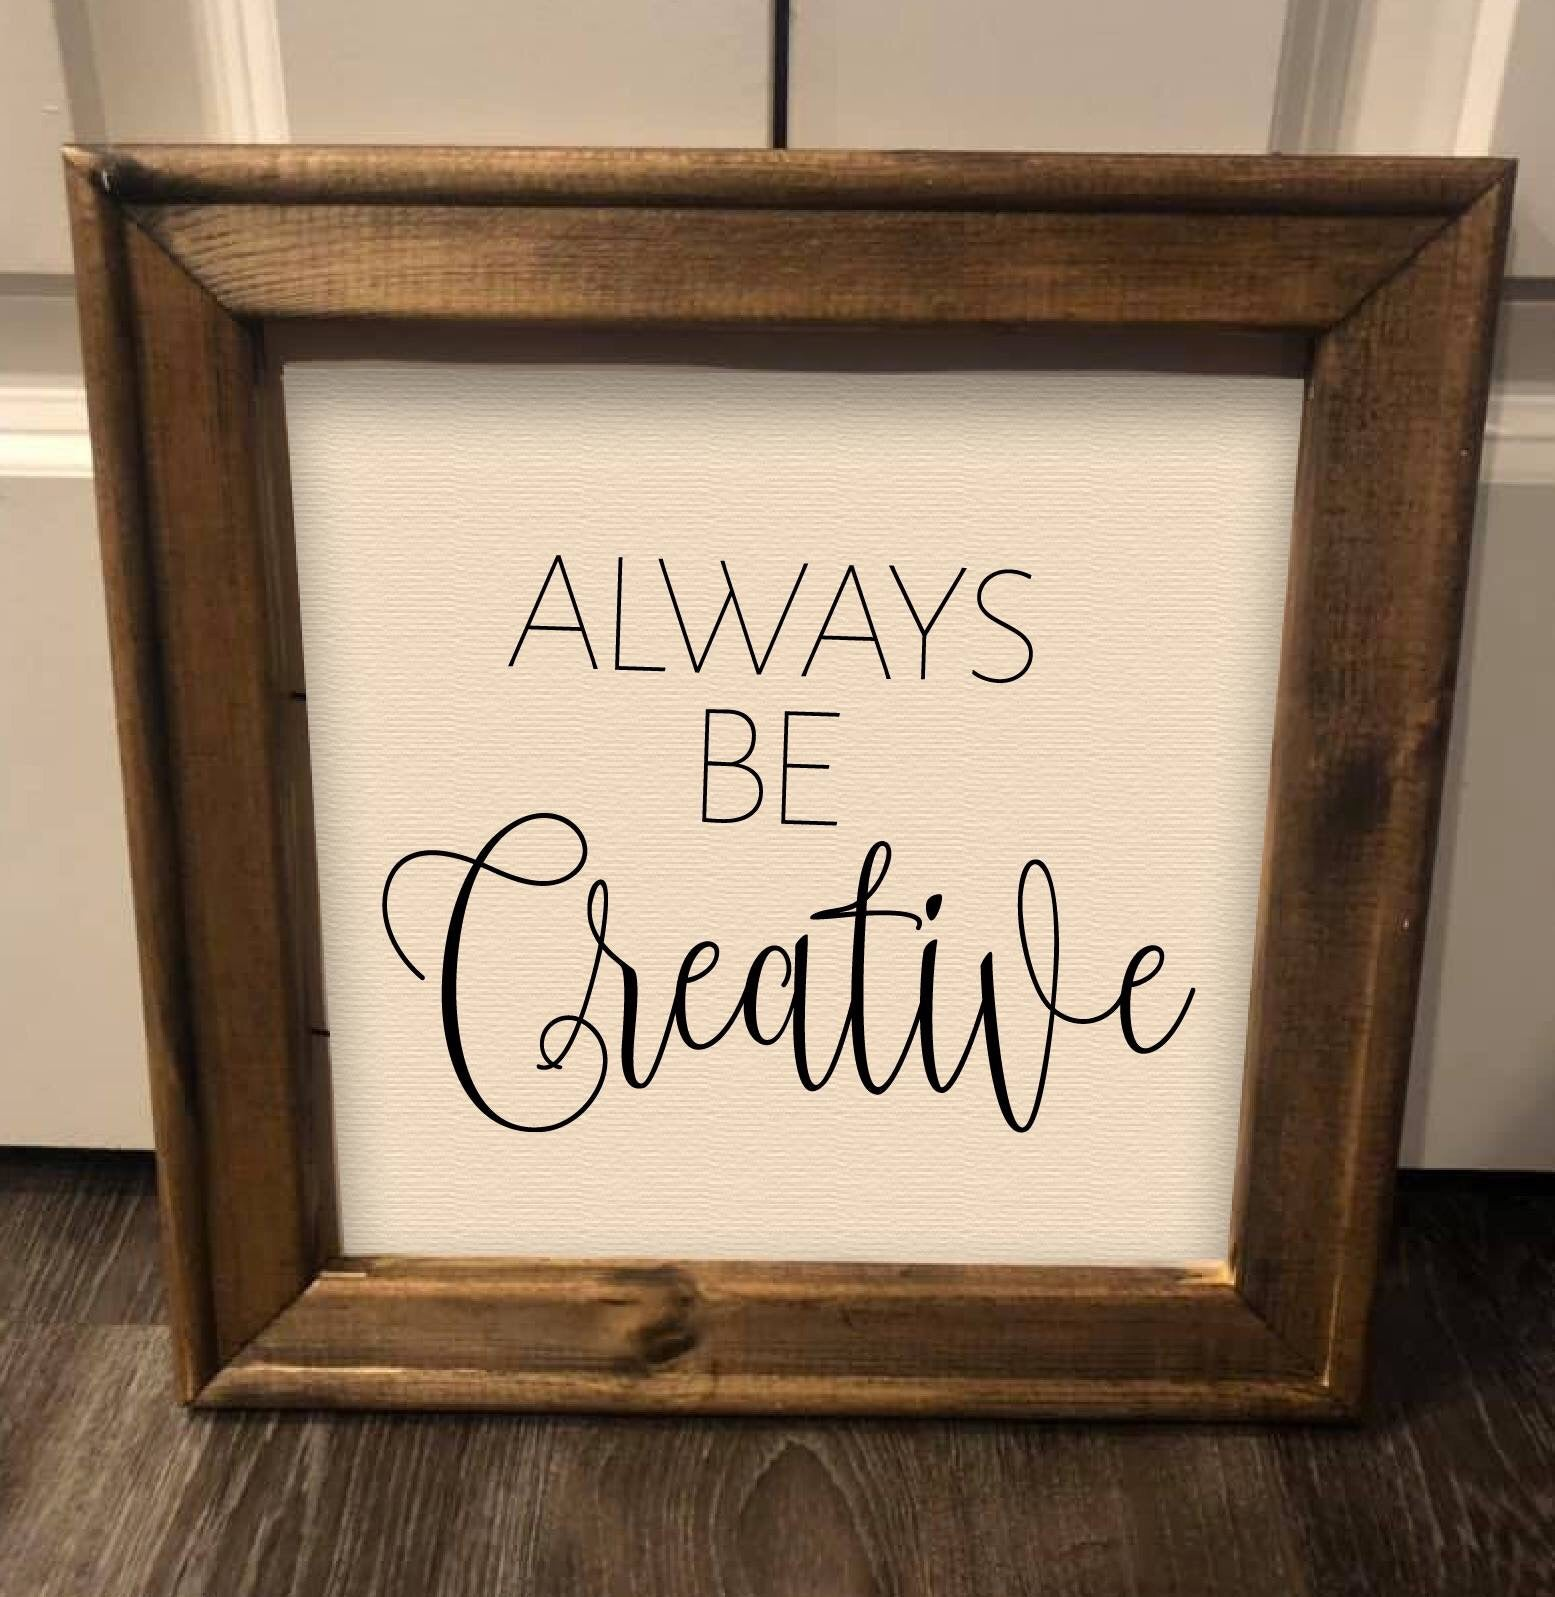 Always Be Creative Farmhouse Rustic Reverse Canvas Framed Sign